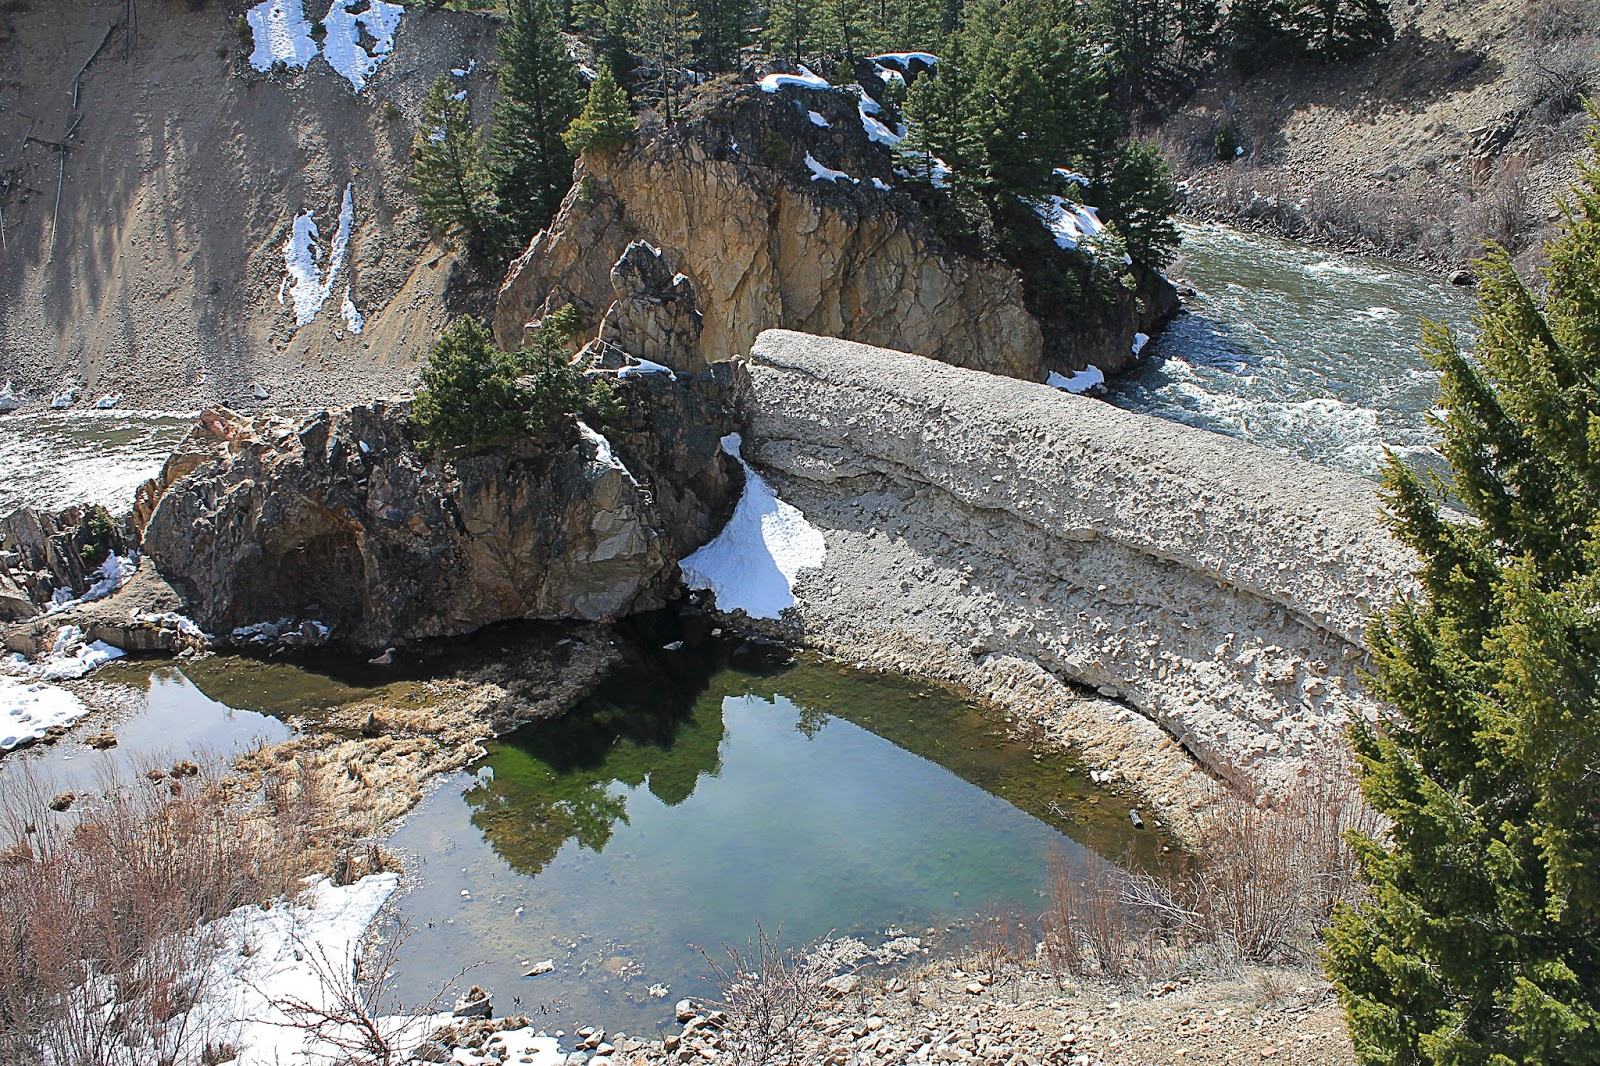 Salmon River Idaho geology travel field trip photography Spring snow mountains outdoors nature hiking camping copyright rocdoctravel.com